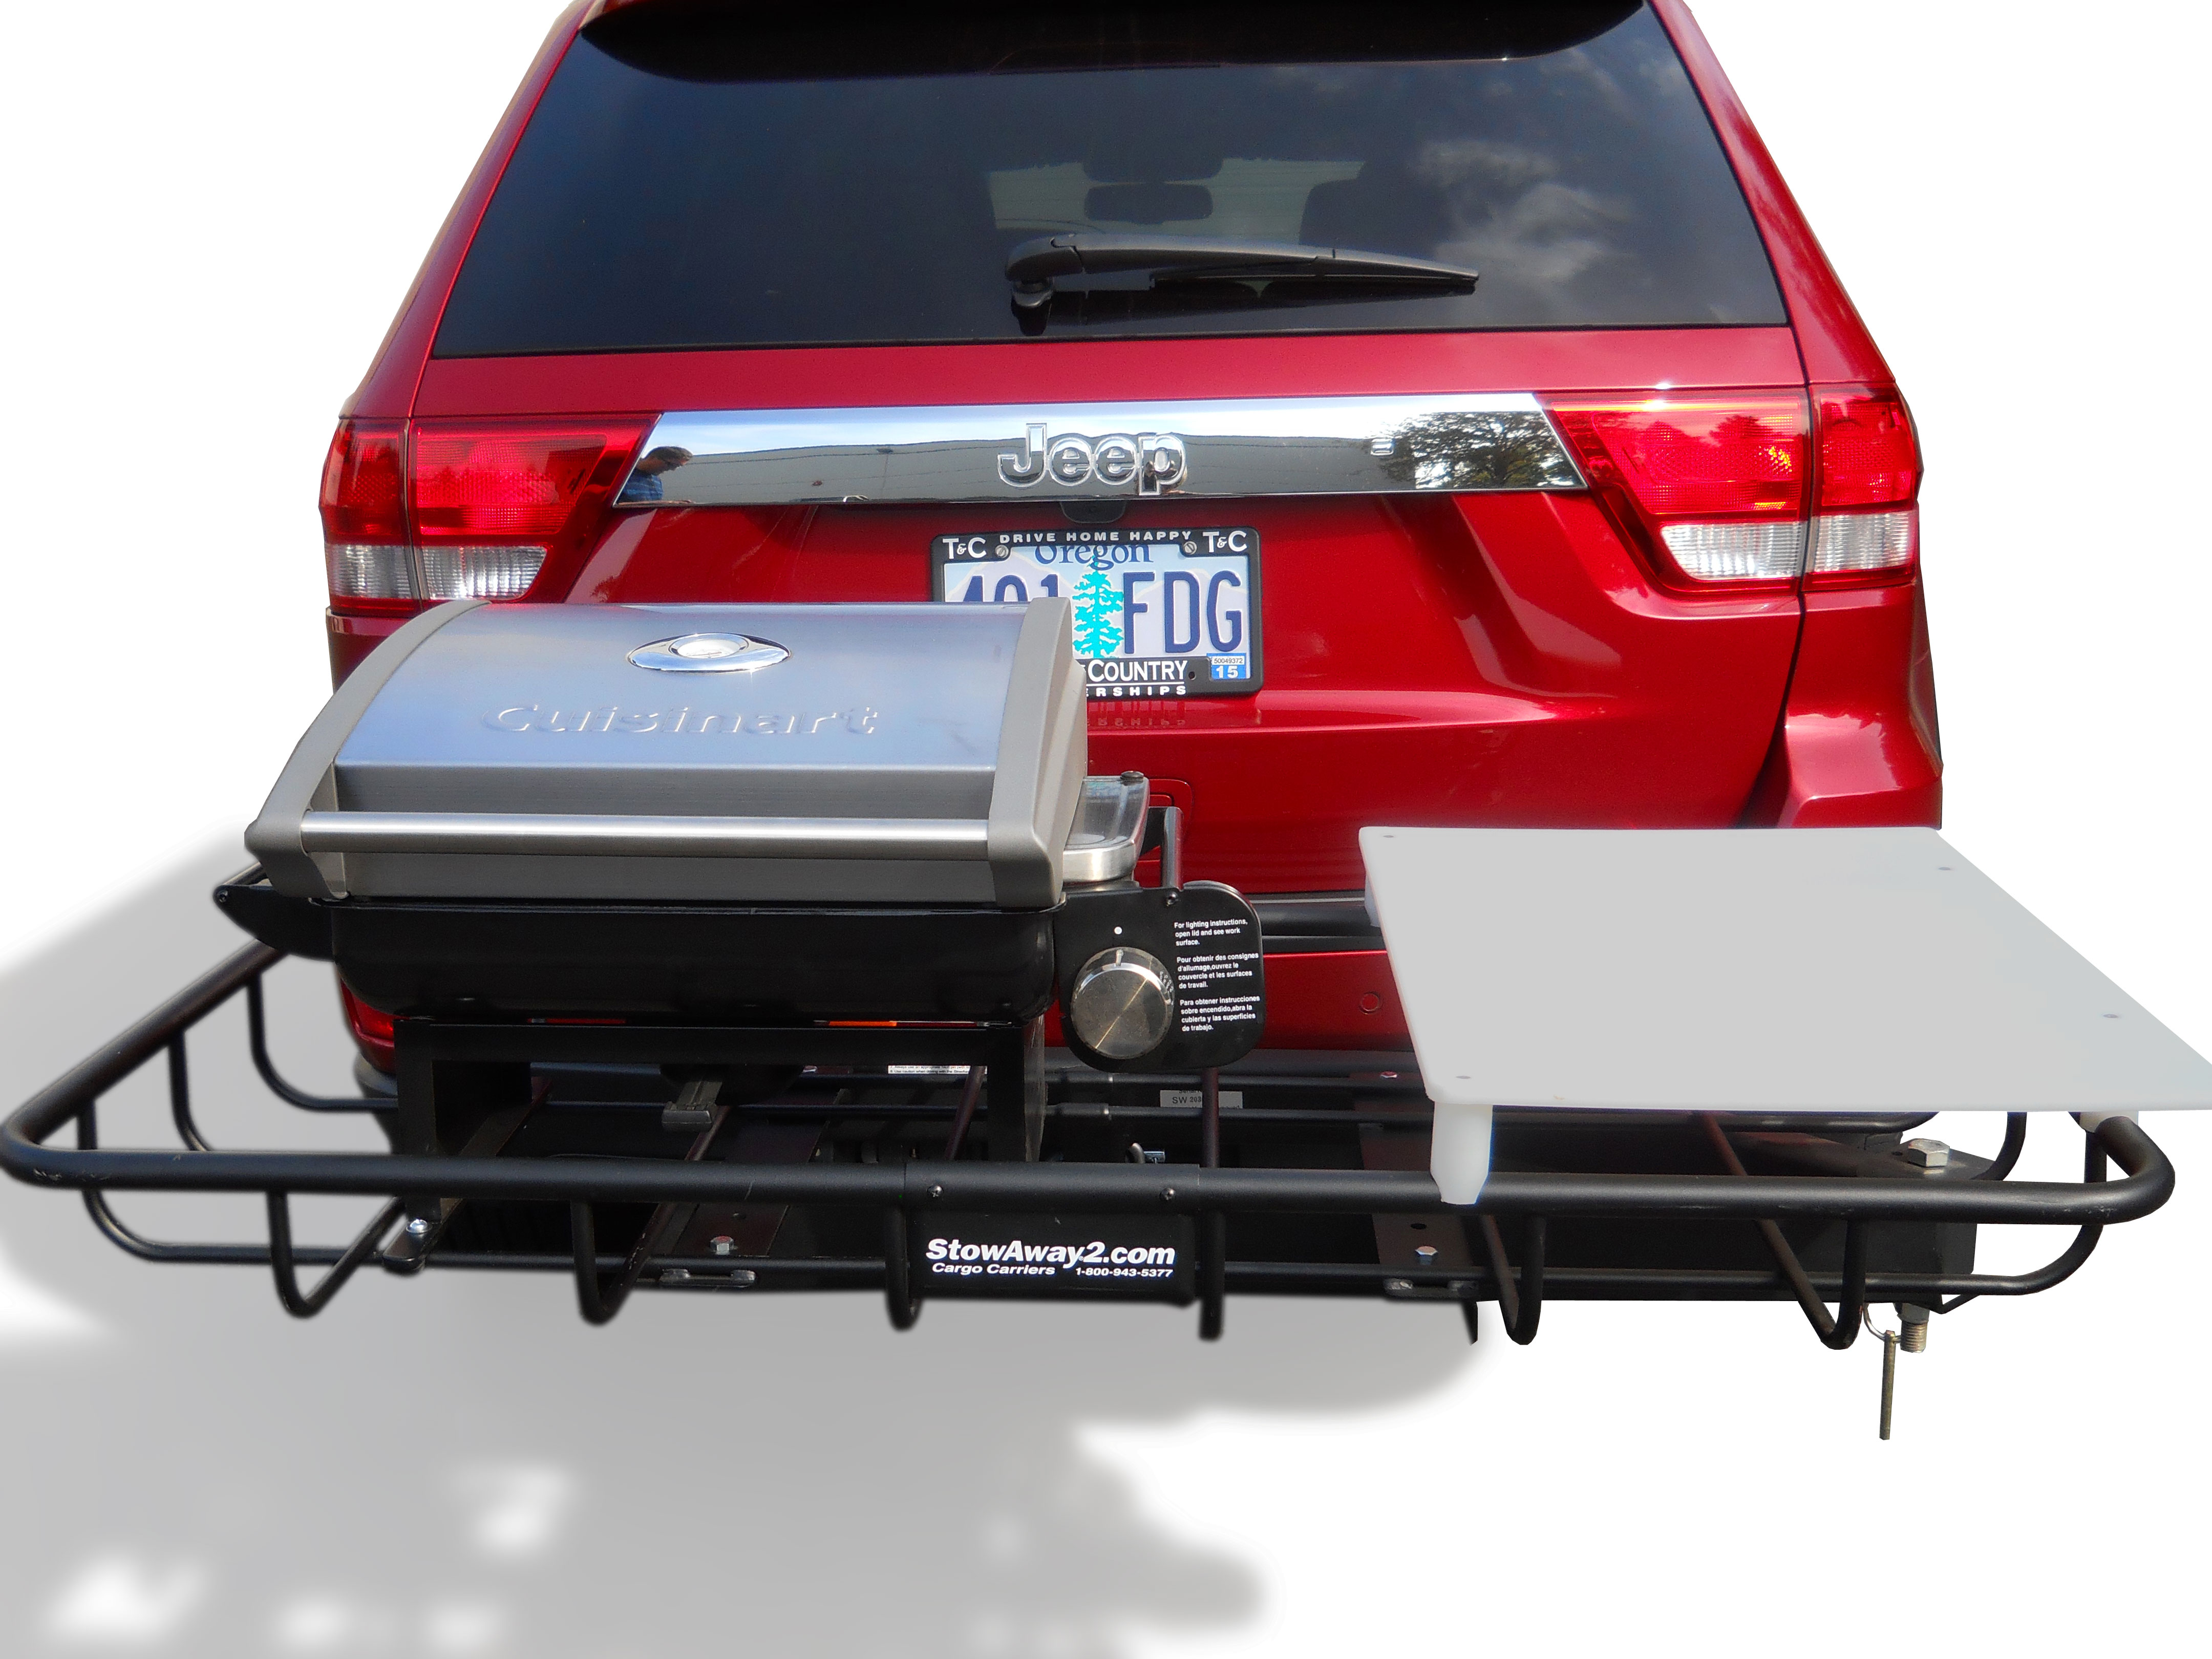 StowAway Hitch Mount Grill for Tailgating and Grilling 2 Inch